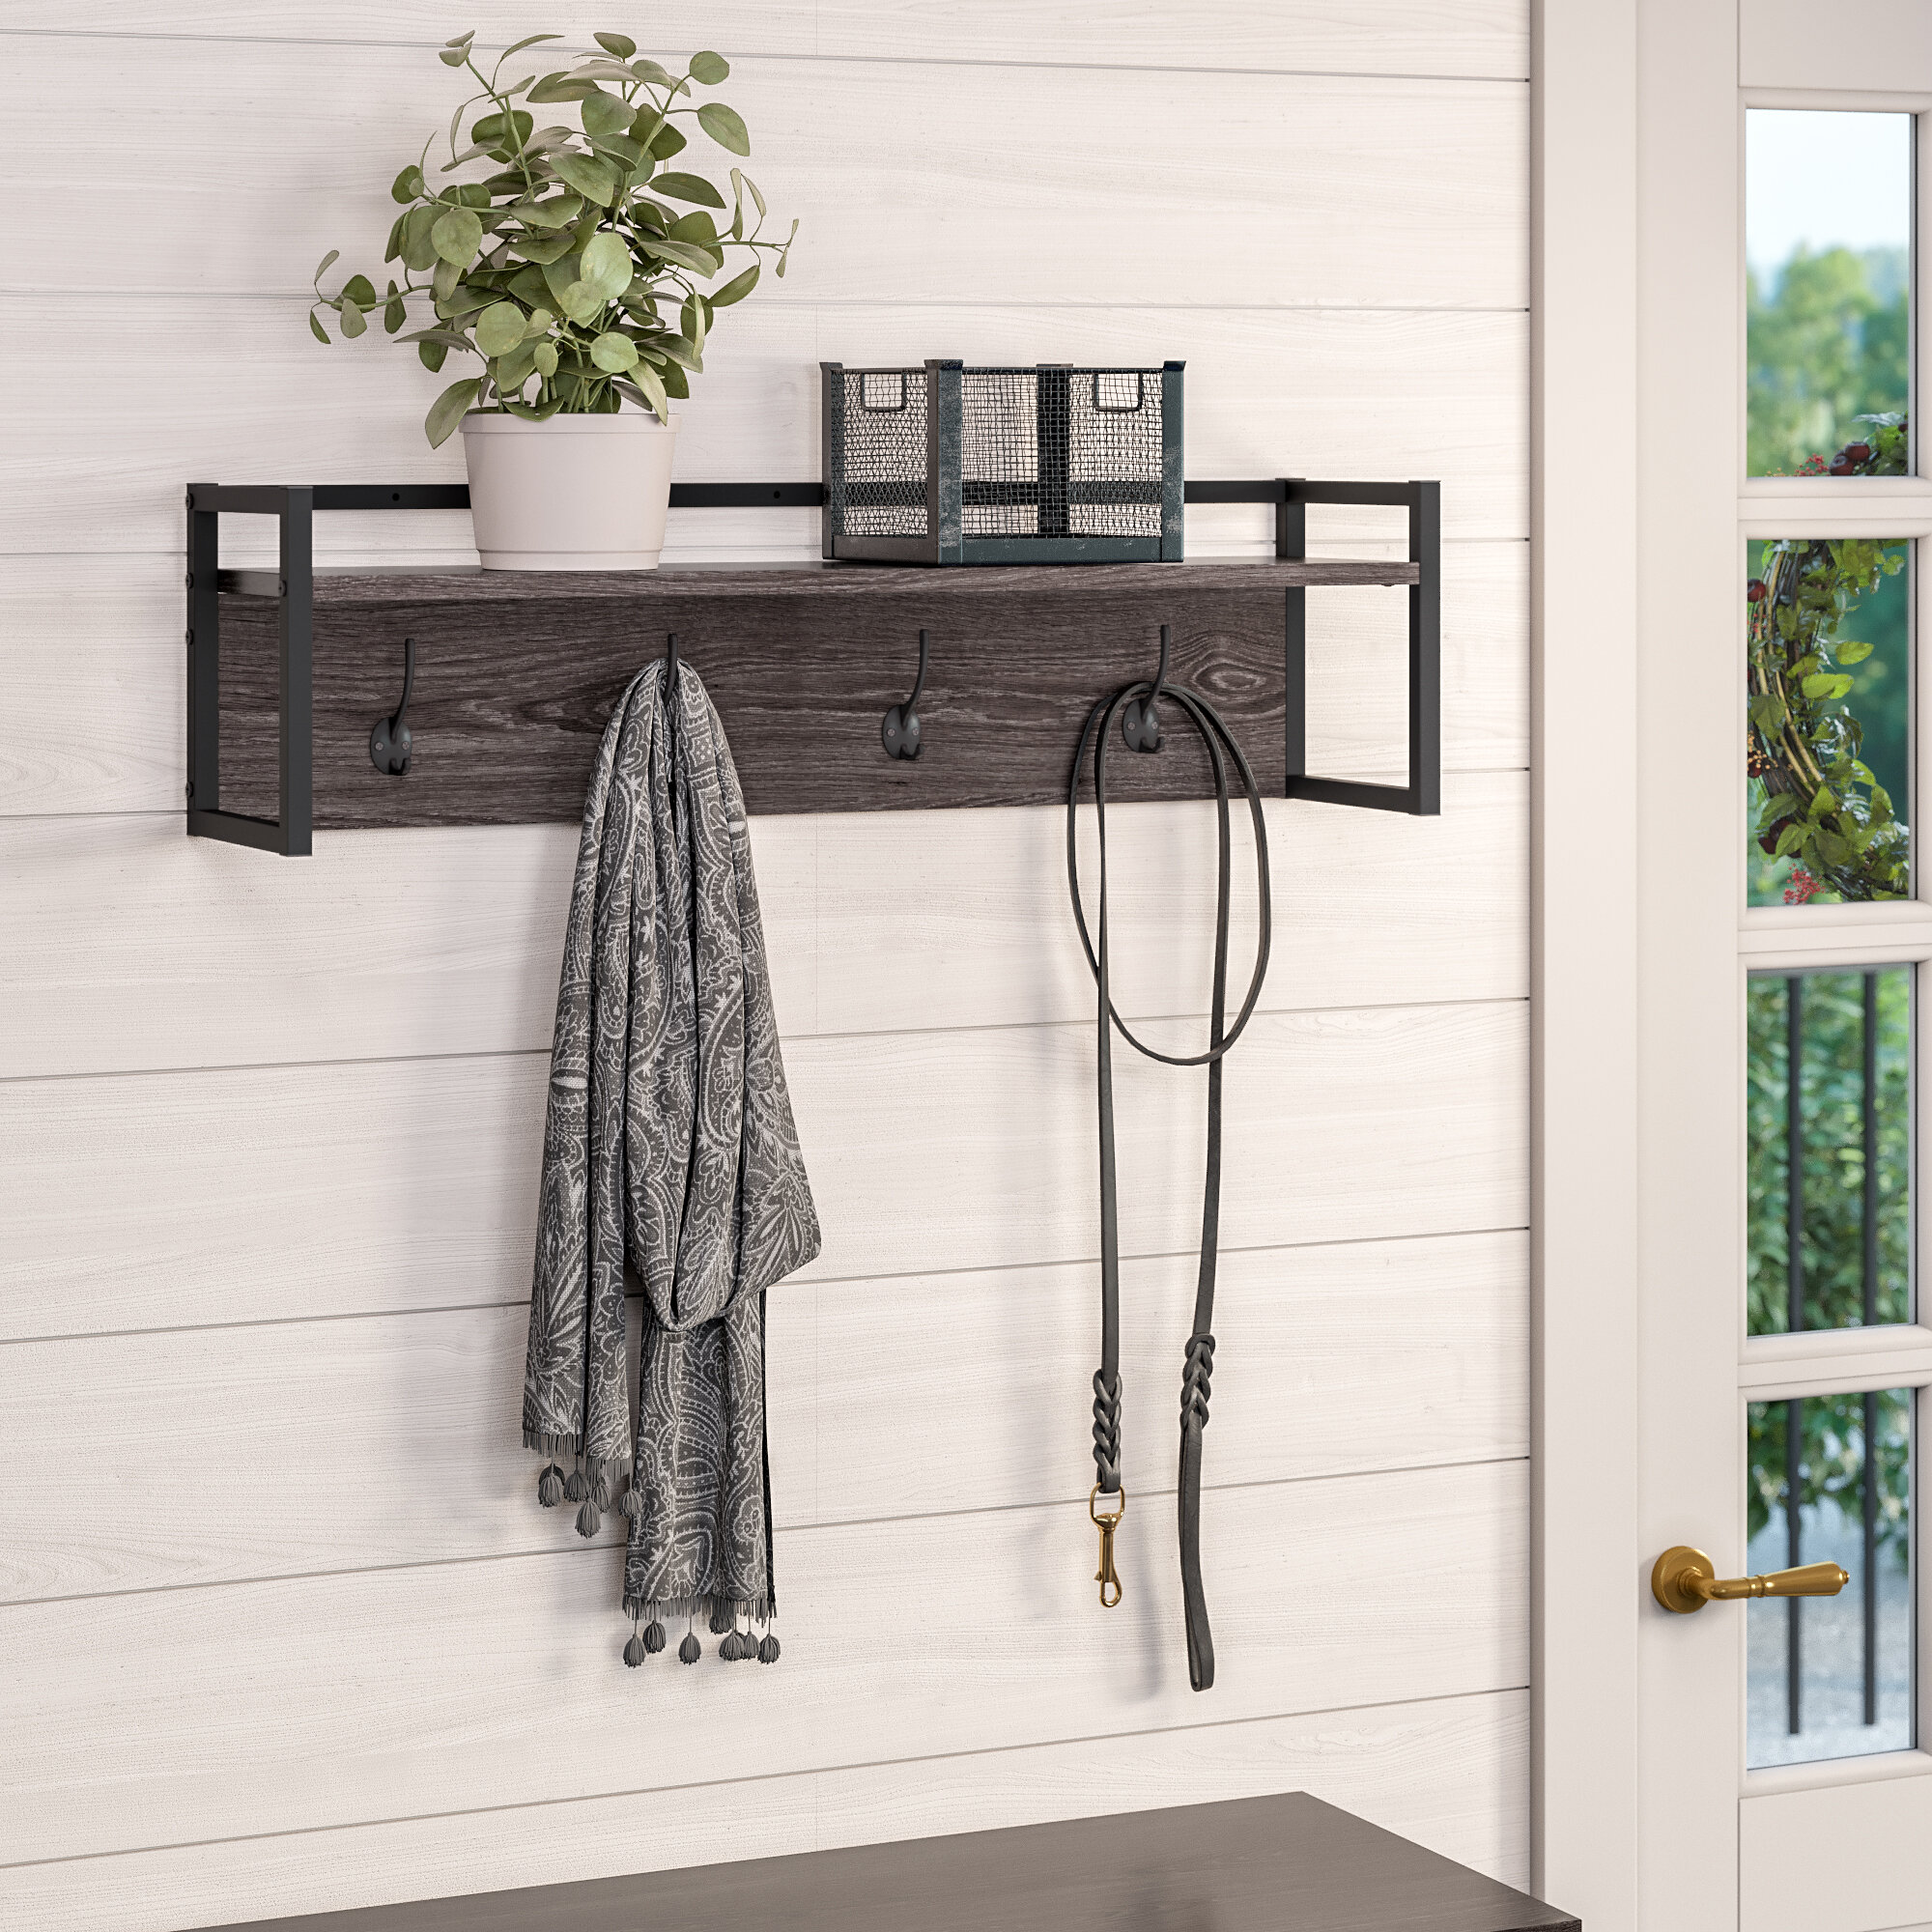 Union Rustic Slippel Wall Mounted Coat Rack & Reviews | Wayfair